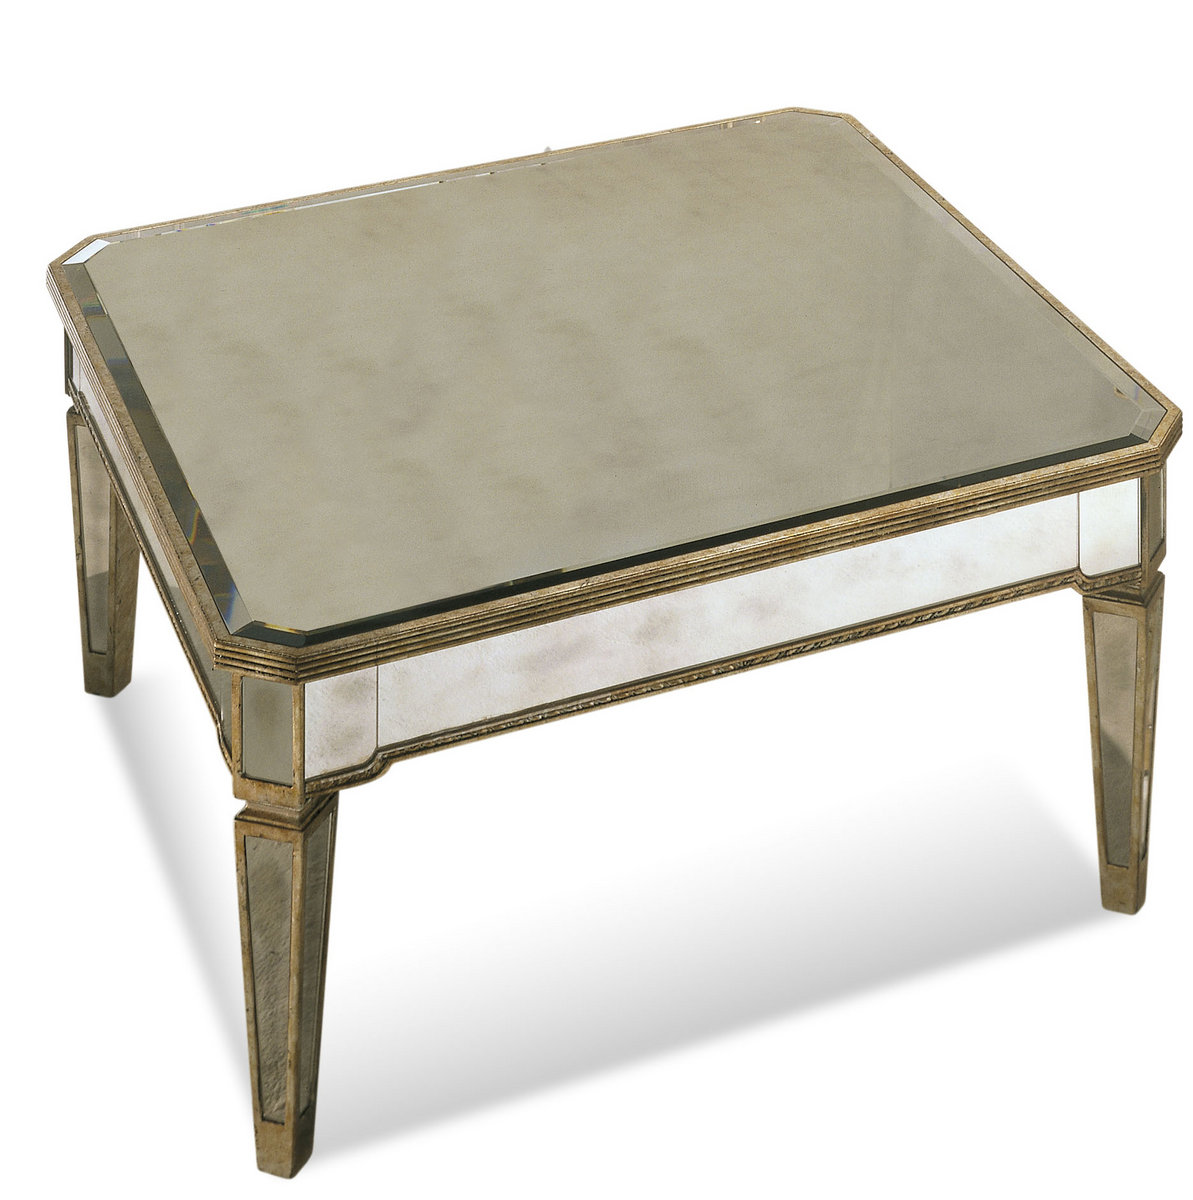 Borghese Mirrored Square Cocktail Table Antique Mirror Silver